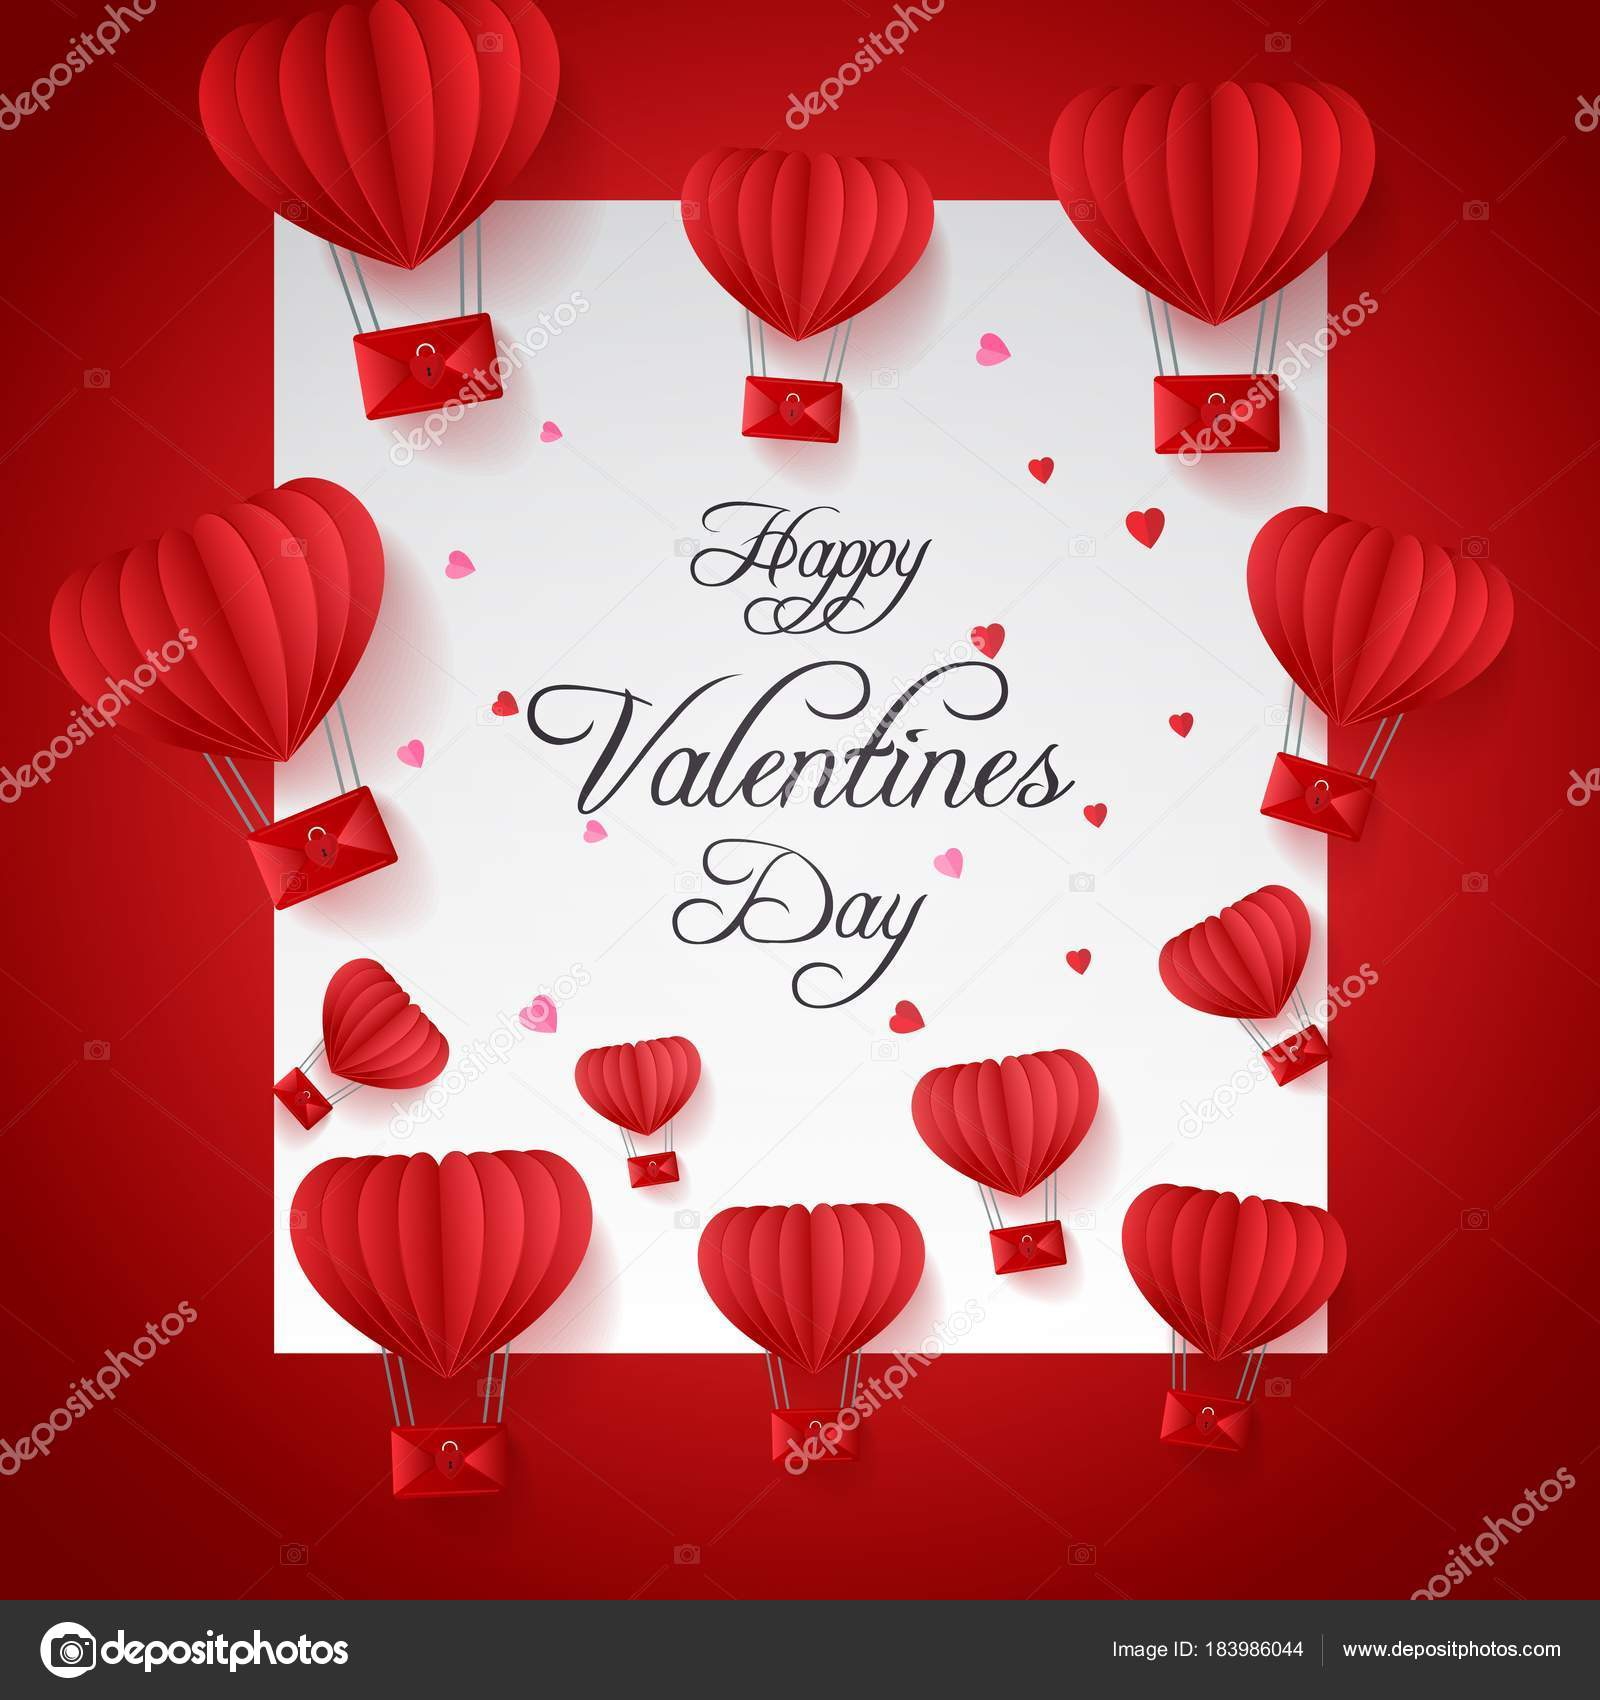 Happy valentines day greetings card paper cut red heart shape happy valentines day greetings card paper cut red heart shape stock vector m4hsunfo